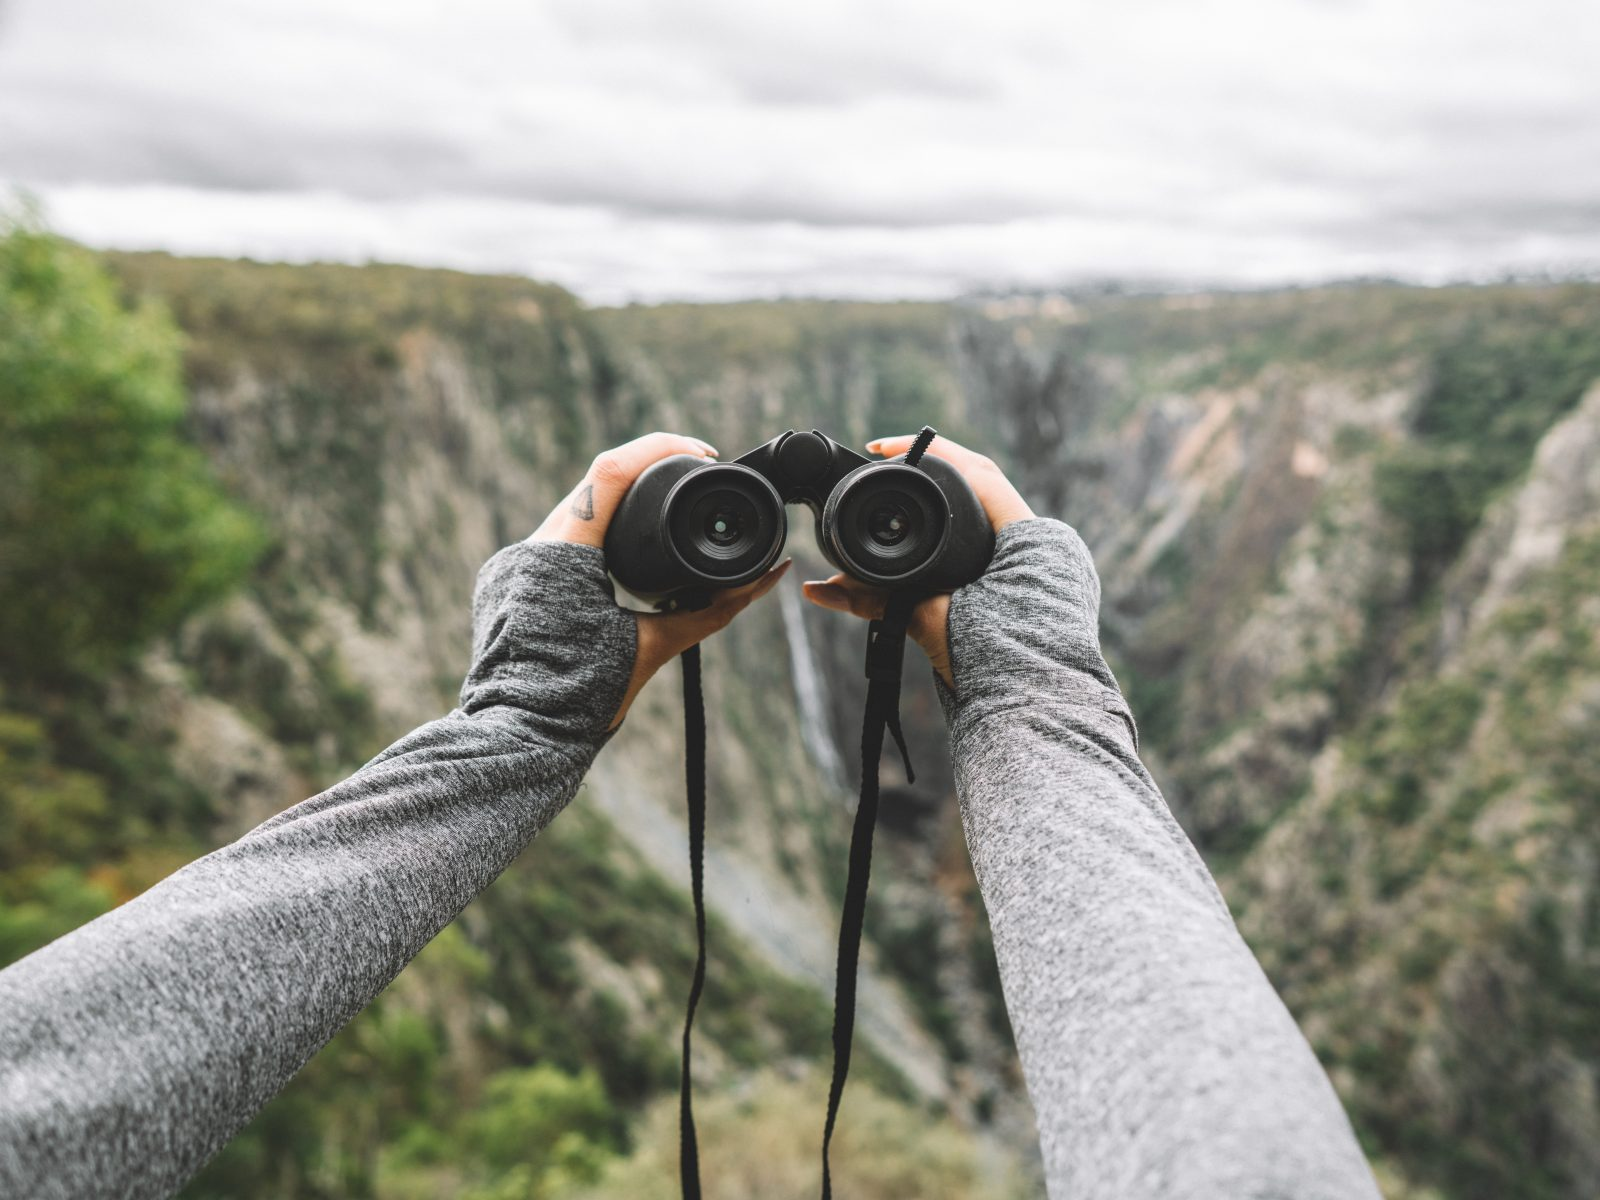 Holding binoculars looking for waterfalls